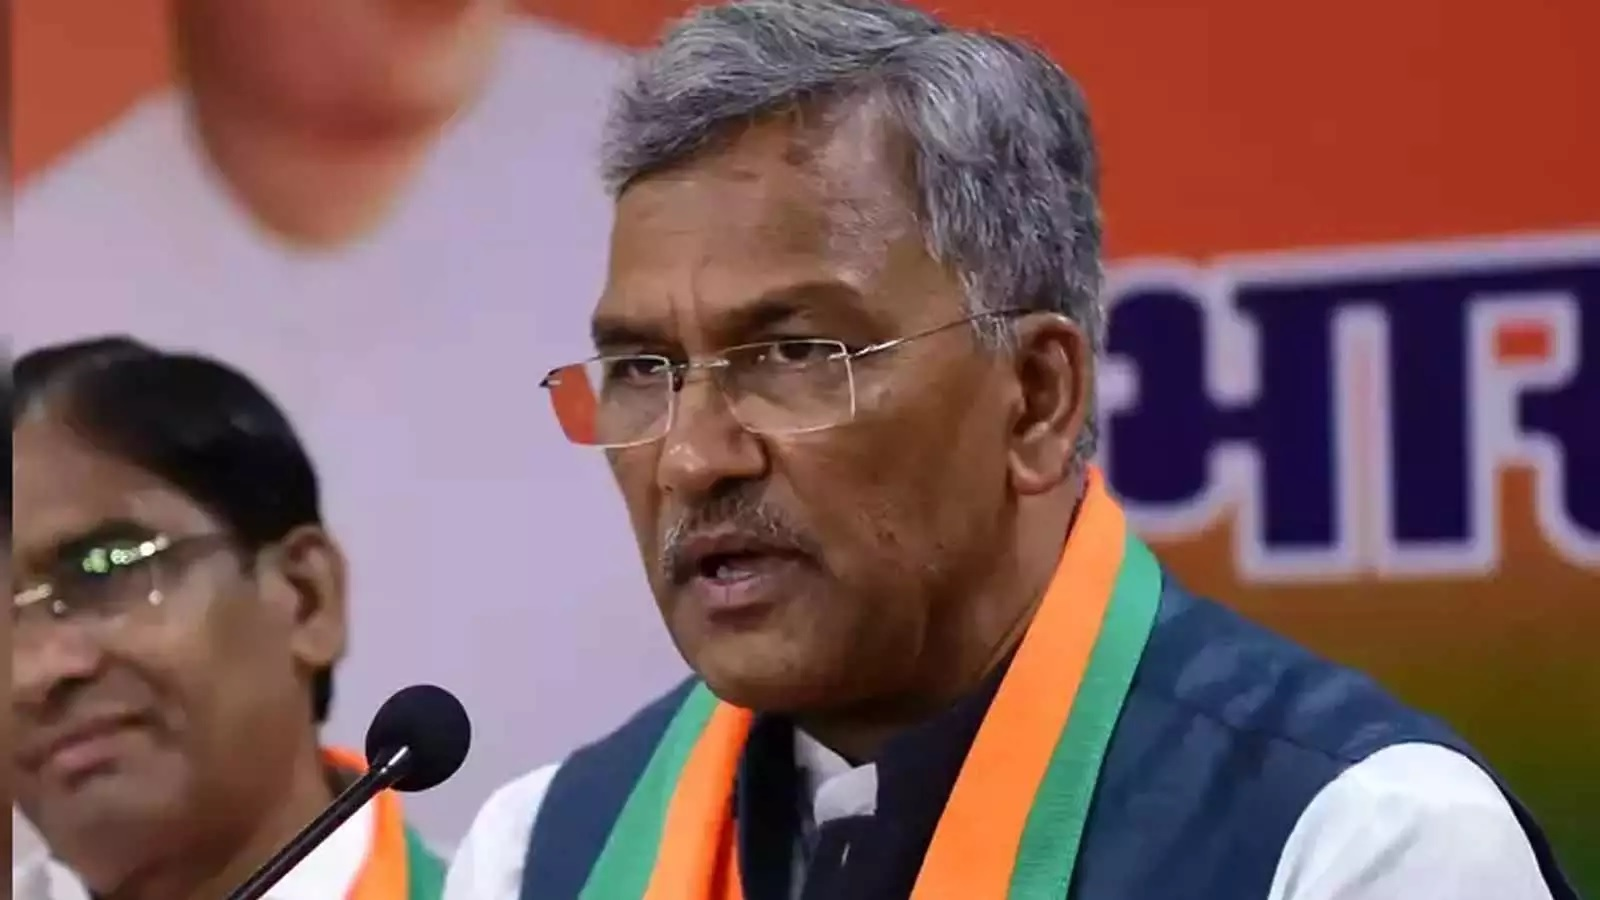 Uttarakhand Chief Minister To Meet With BJP Chief Amid Removal Reports